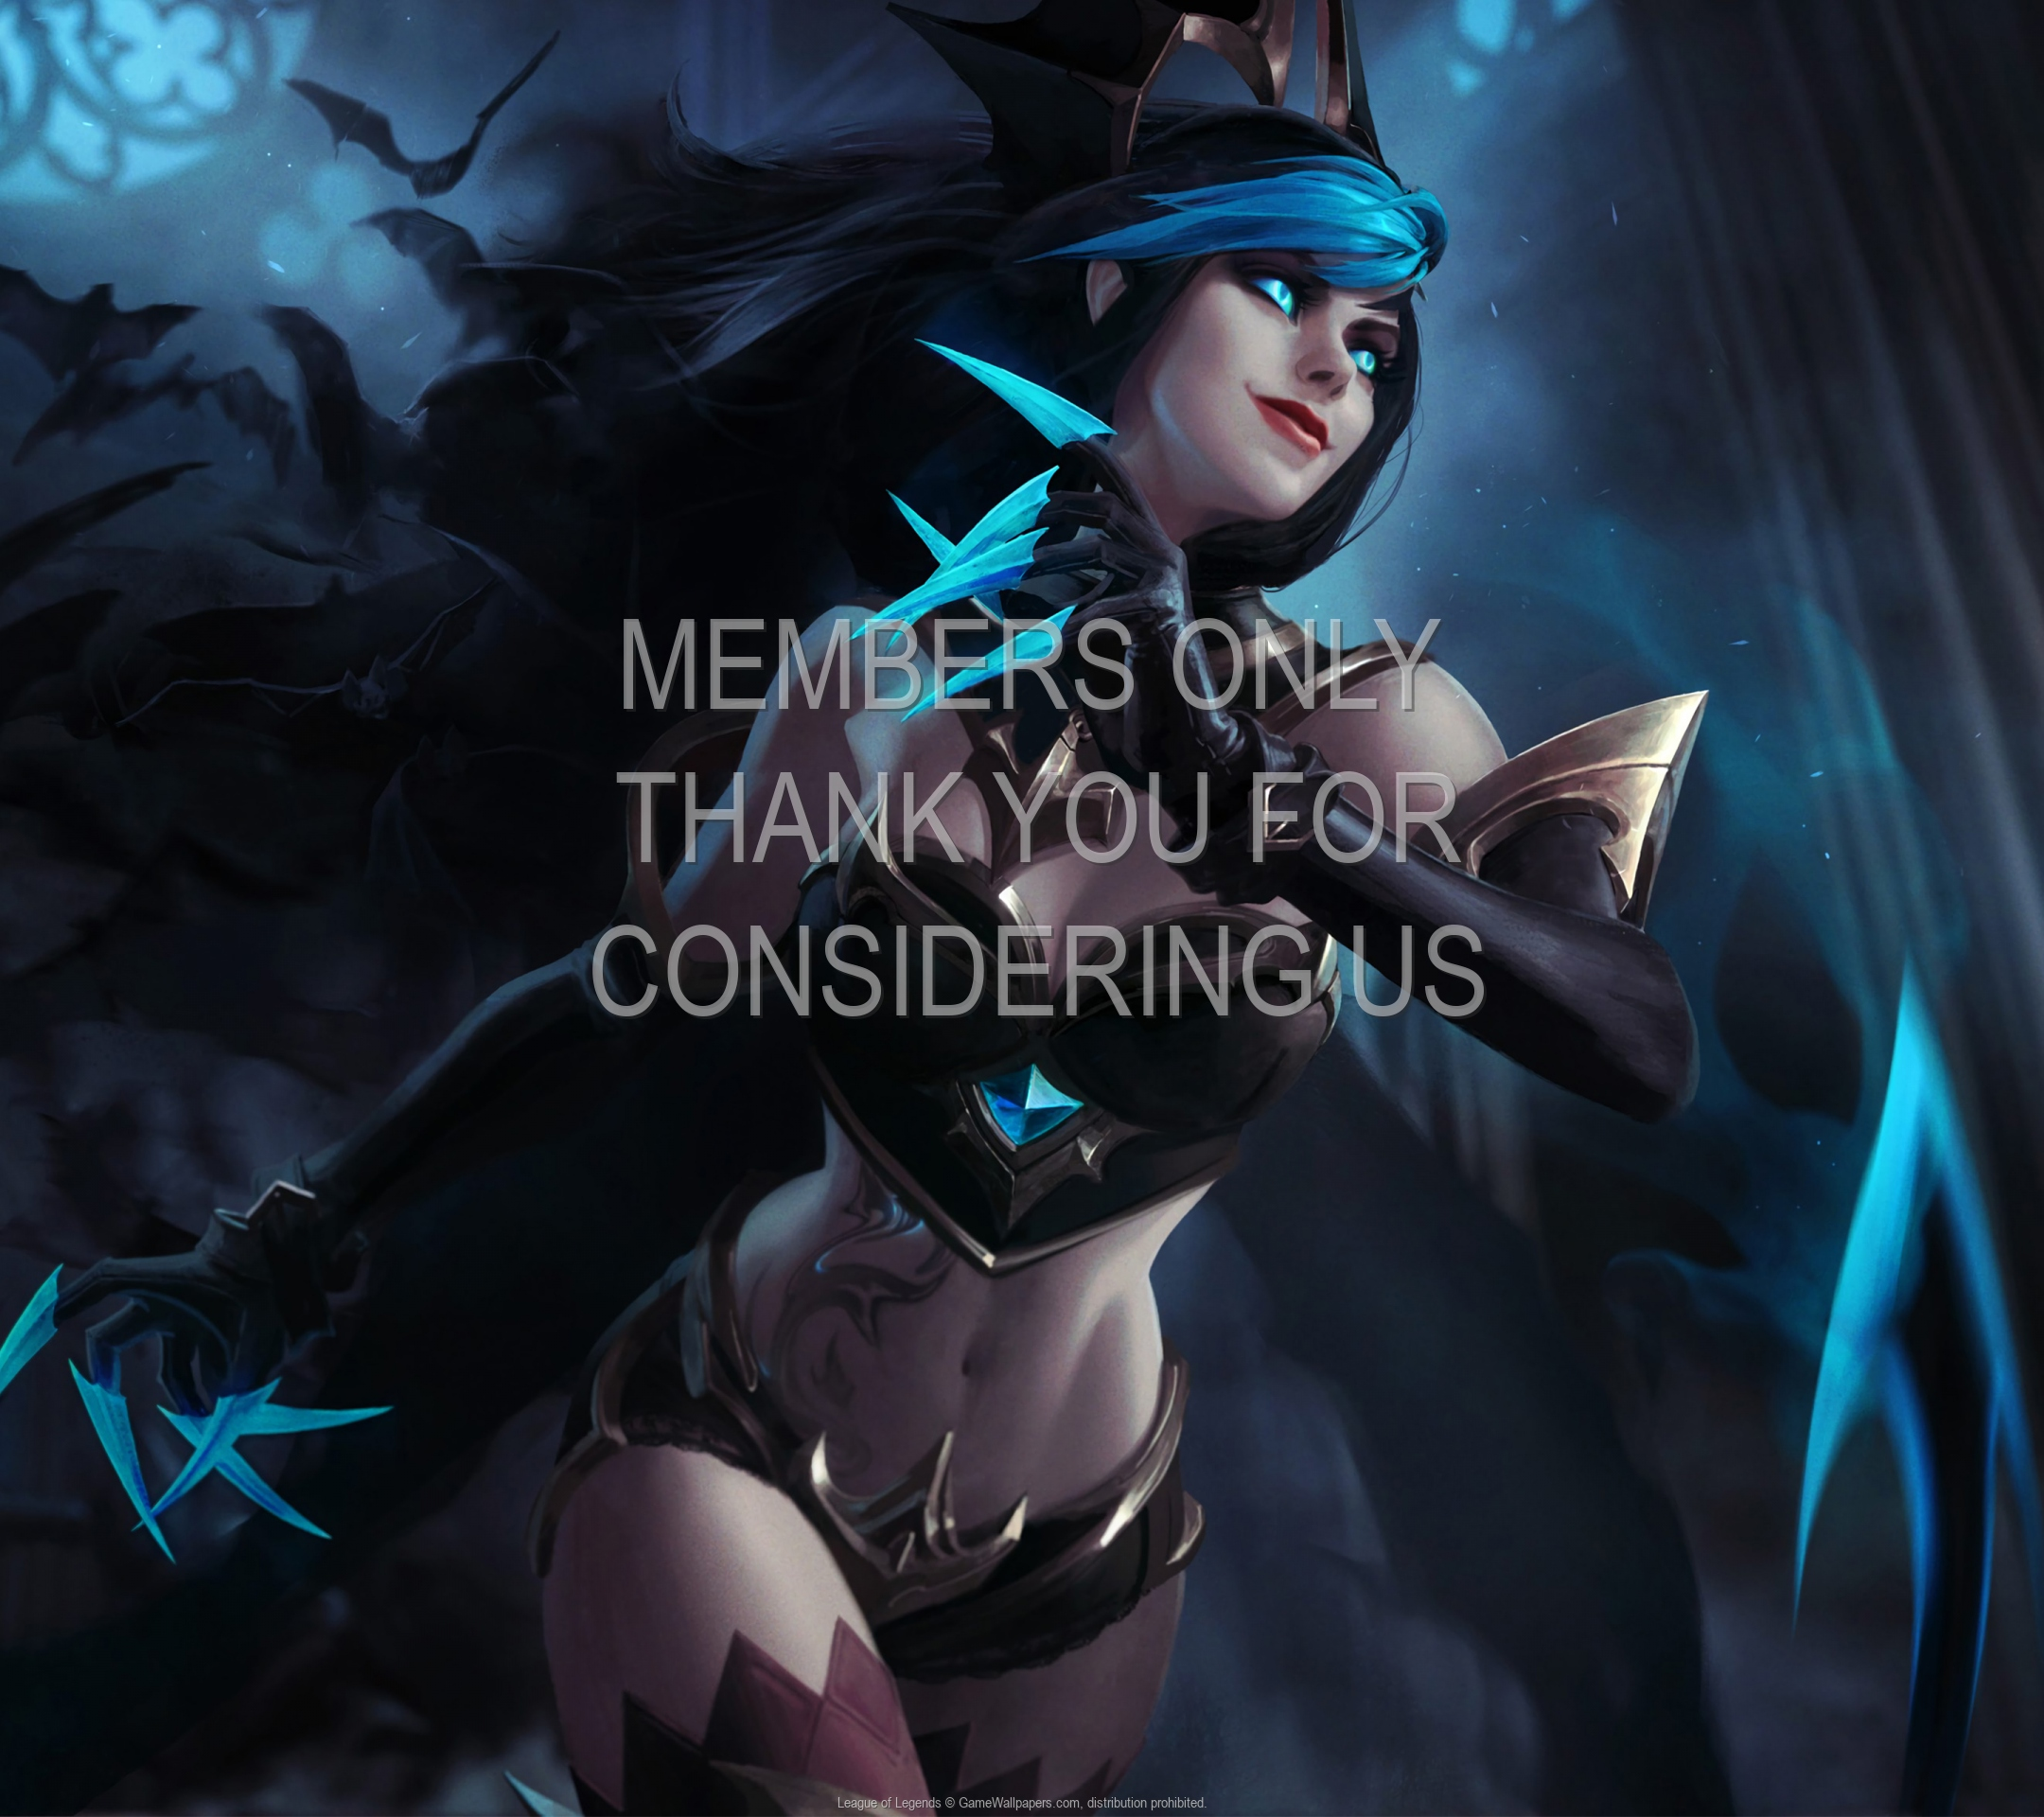 League of Legends 1920x1080 Handy Hintergrundbild 80